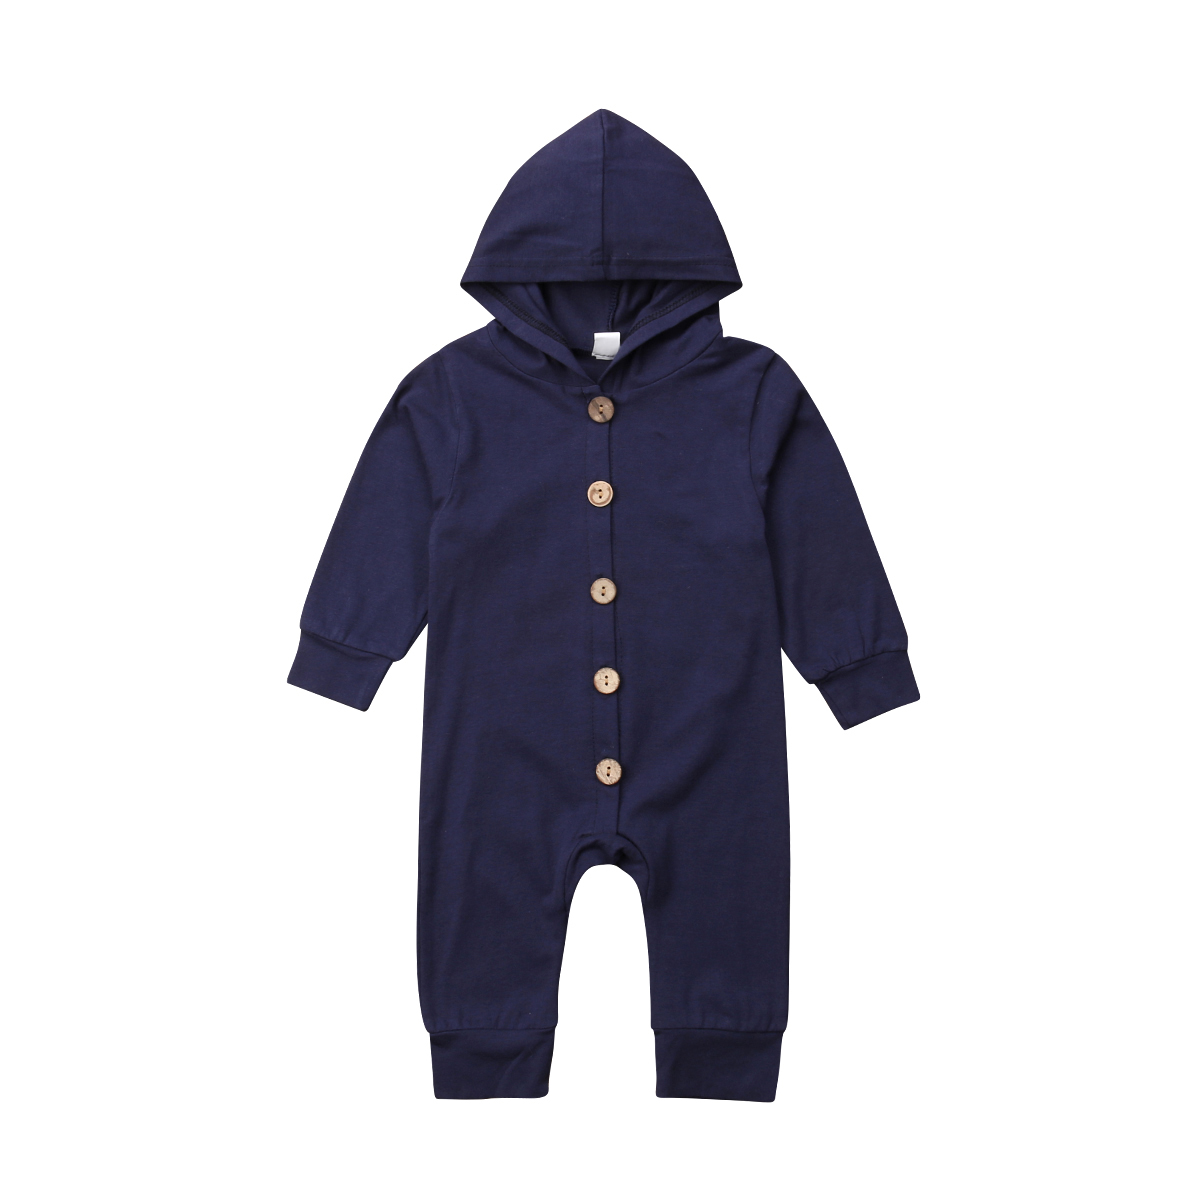 Toddler <font><b>Baby</b></font> Clothes Hooded Long Sleeve Button Boy Girl Kids <font><b>Baby</b></font> <font><b>Rompers</b></font> Cotton Jumpsuit New Born <font><b>Baby</b></font> Clothes Casual Outfit image